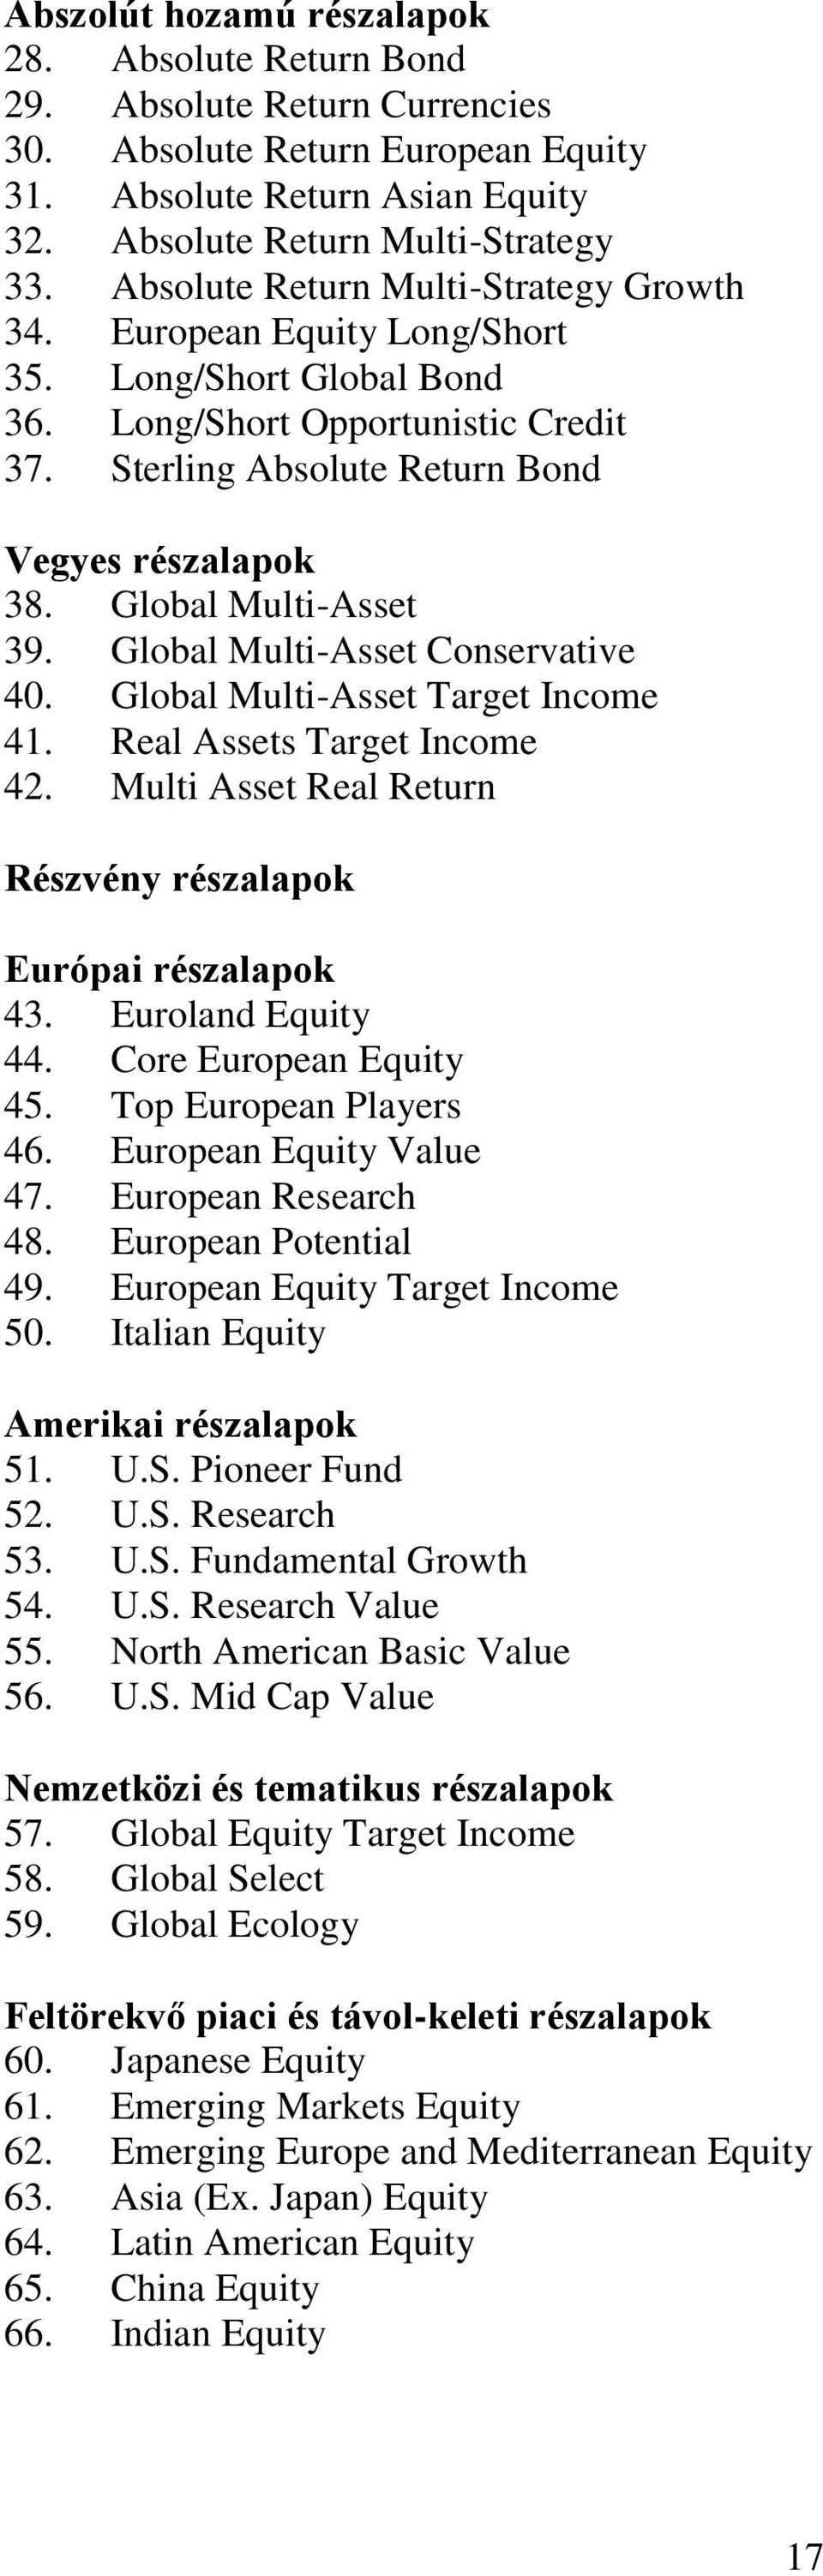 Global Multi-Asset 39. Global Multi-Asset Conservative 40. Global Multi-Asset Target Income 41. Real Assets Target Income 42. Multi Asset Real Return Részvény részalapok Európai részalapok 43.